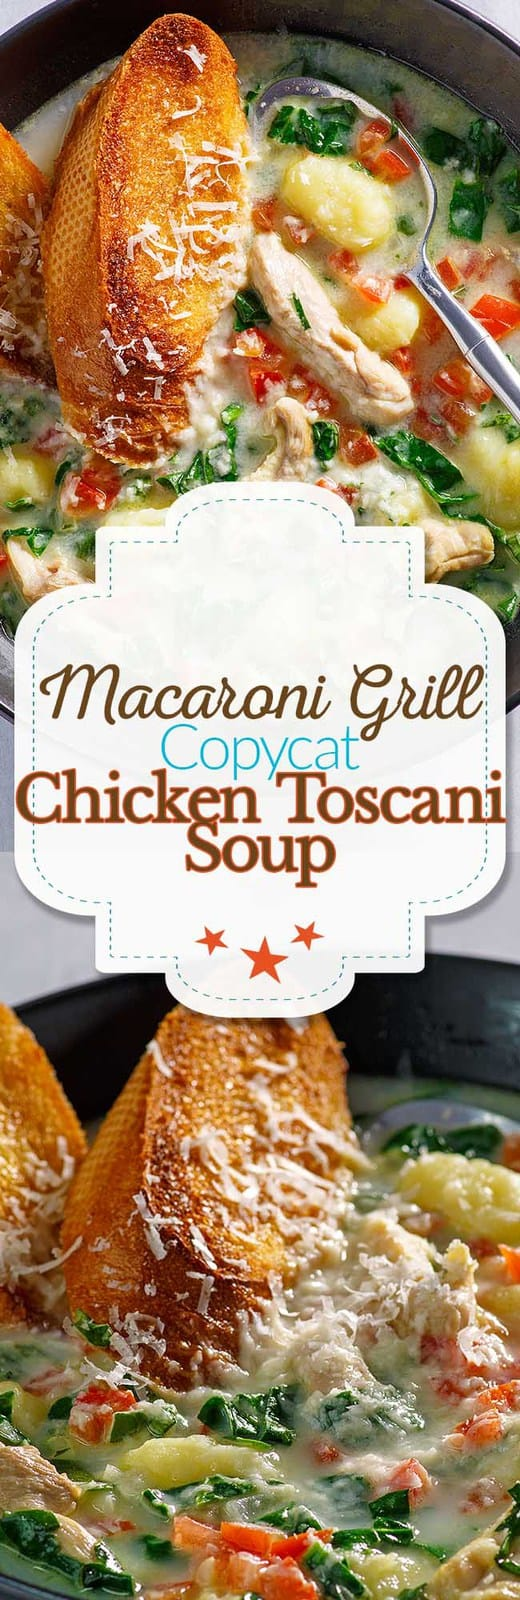 Recreate the Macaroni Grill Toscani Soup at home with this copycat recipe.  #copycat #copycatrecipe #grillechicken #soup #macaronigrill